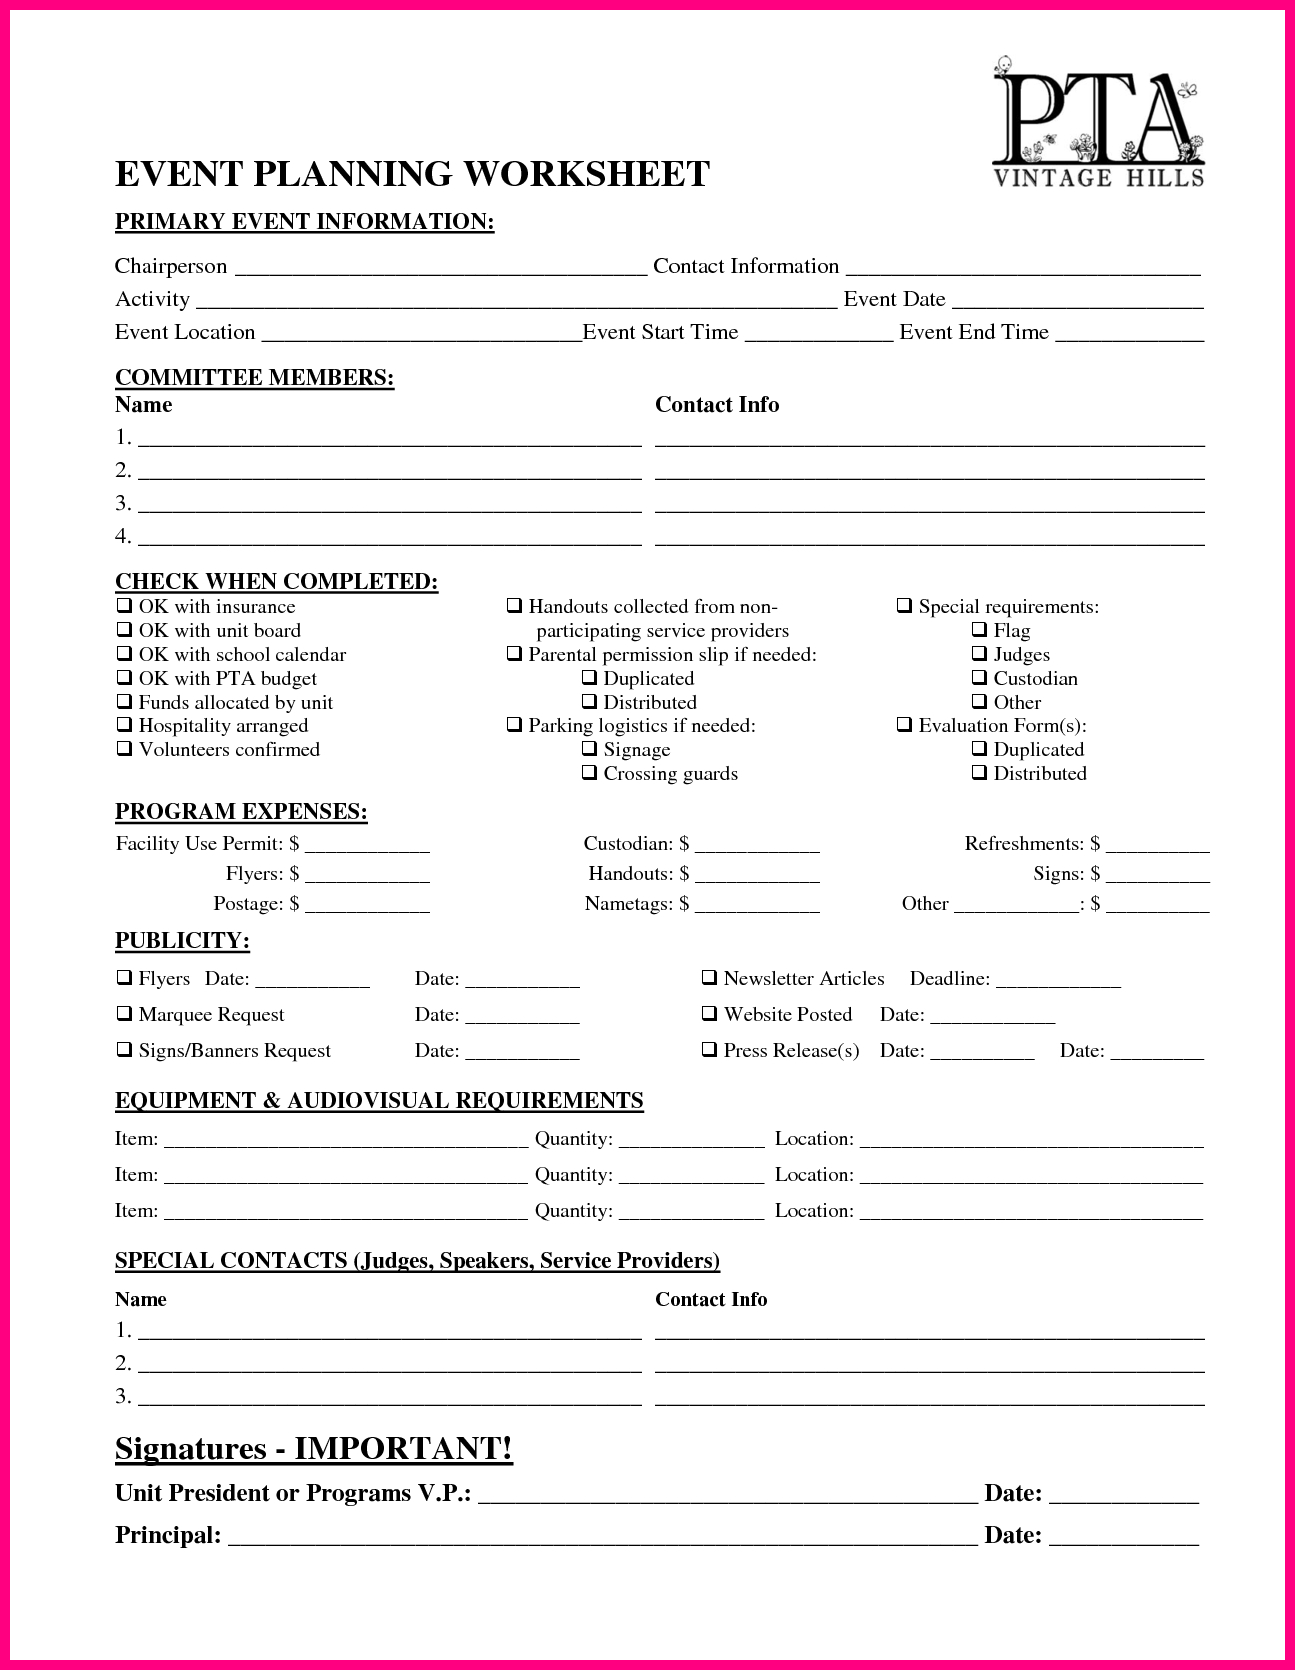 Vhes Pta Event Planning Worksheet By Delrey Pto Stuff in Conference Planning Worksheet